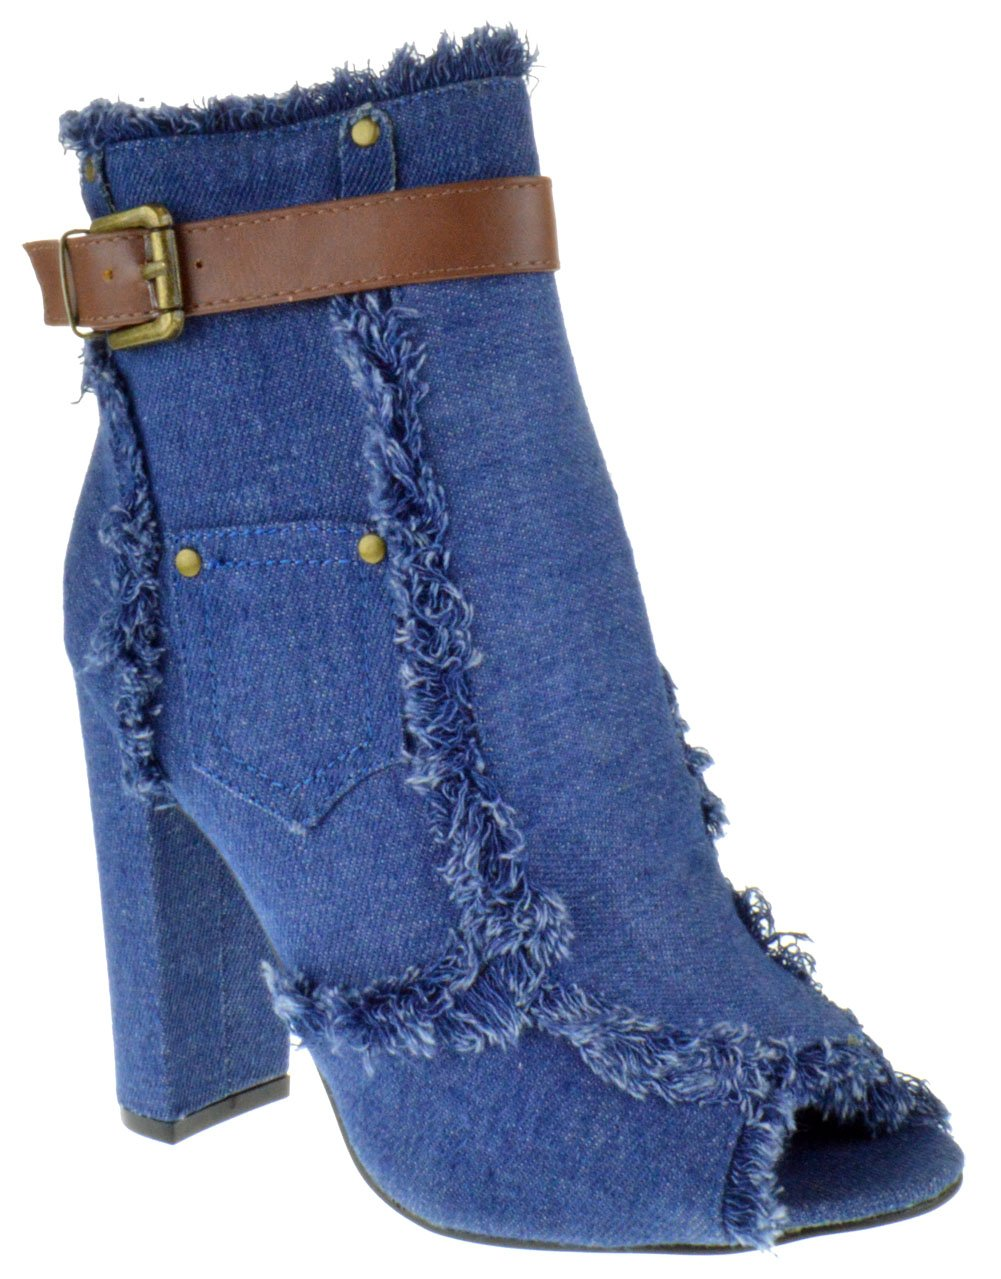 Foever Sherry 10 Womens Freyed Denim Peep Toe Chunky Heel Booties Light Blue Denim 8.5